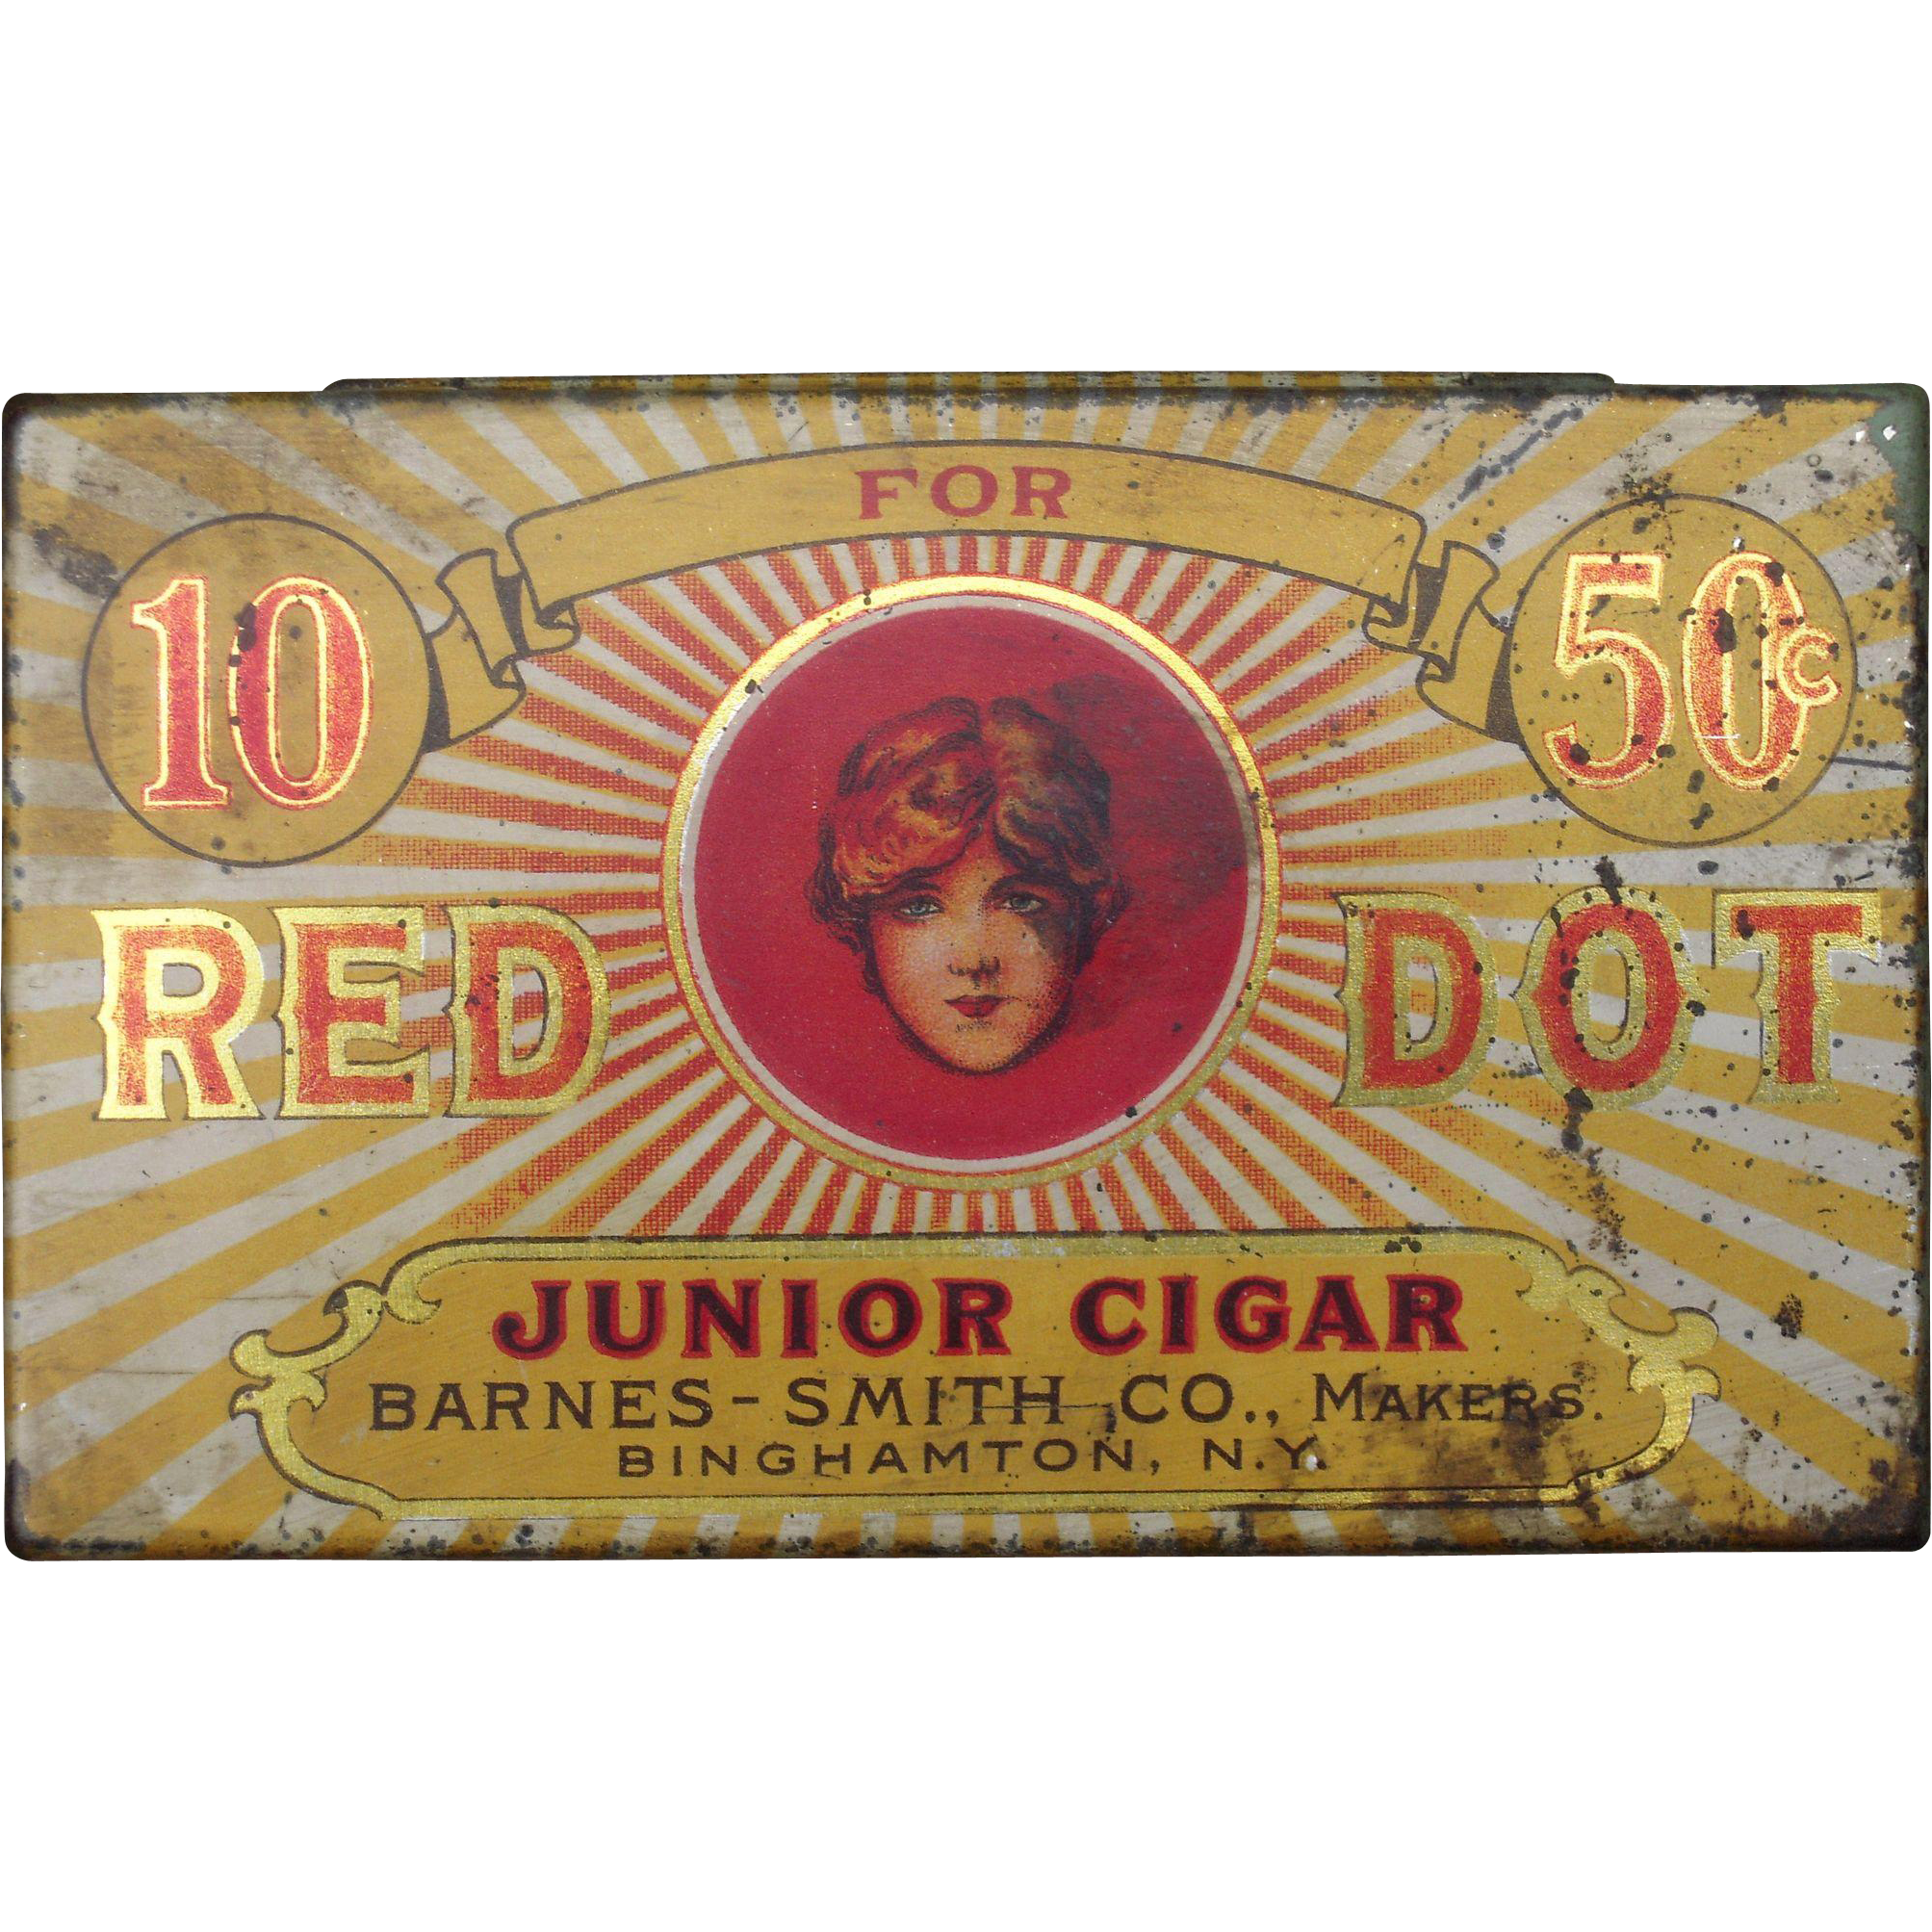 c1905 Advertising Tin Red Dot Cigars from bluesprucerugsandantiques on Ruby Lane